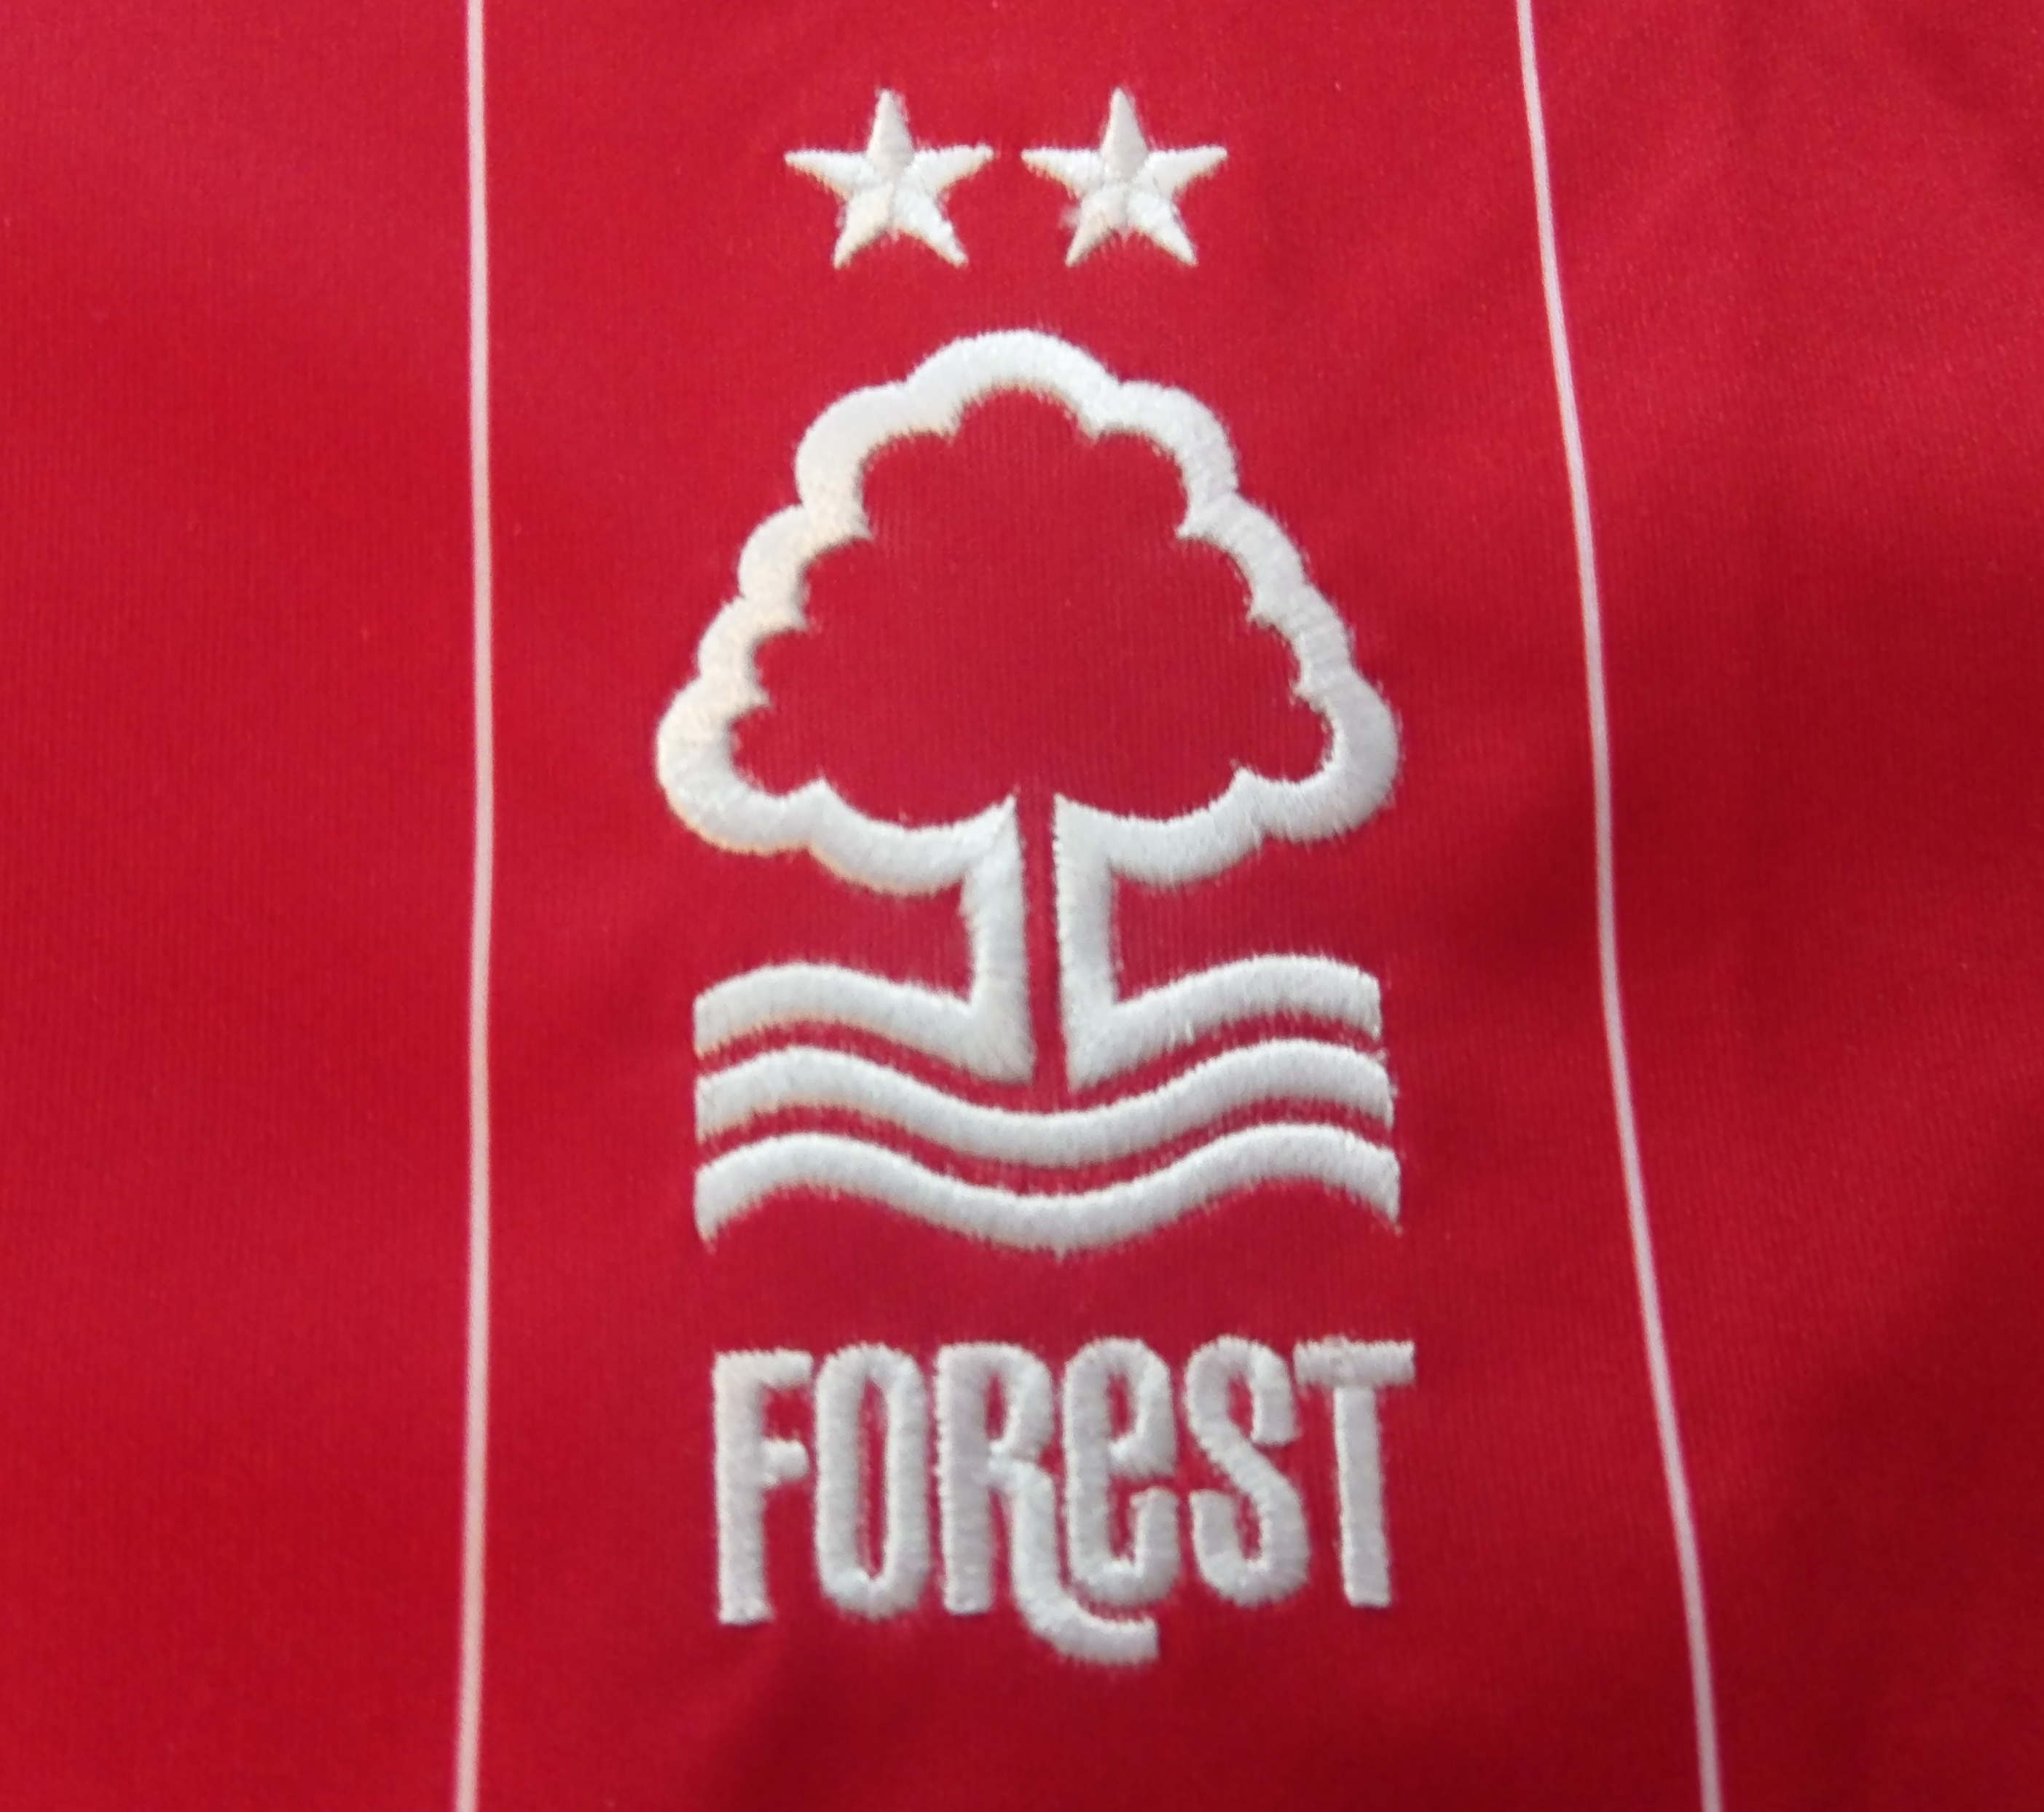 Nottingham forest v leeds betting experts no-risk matched betting canada